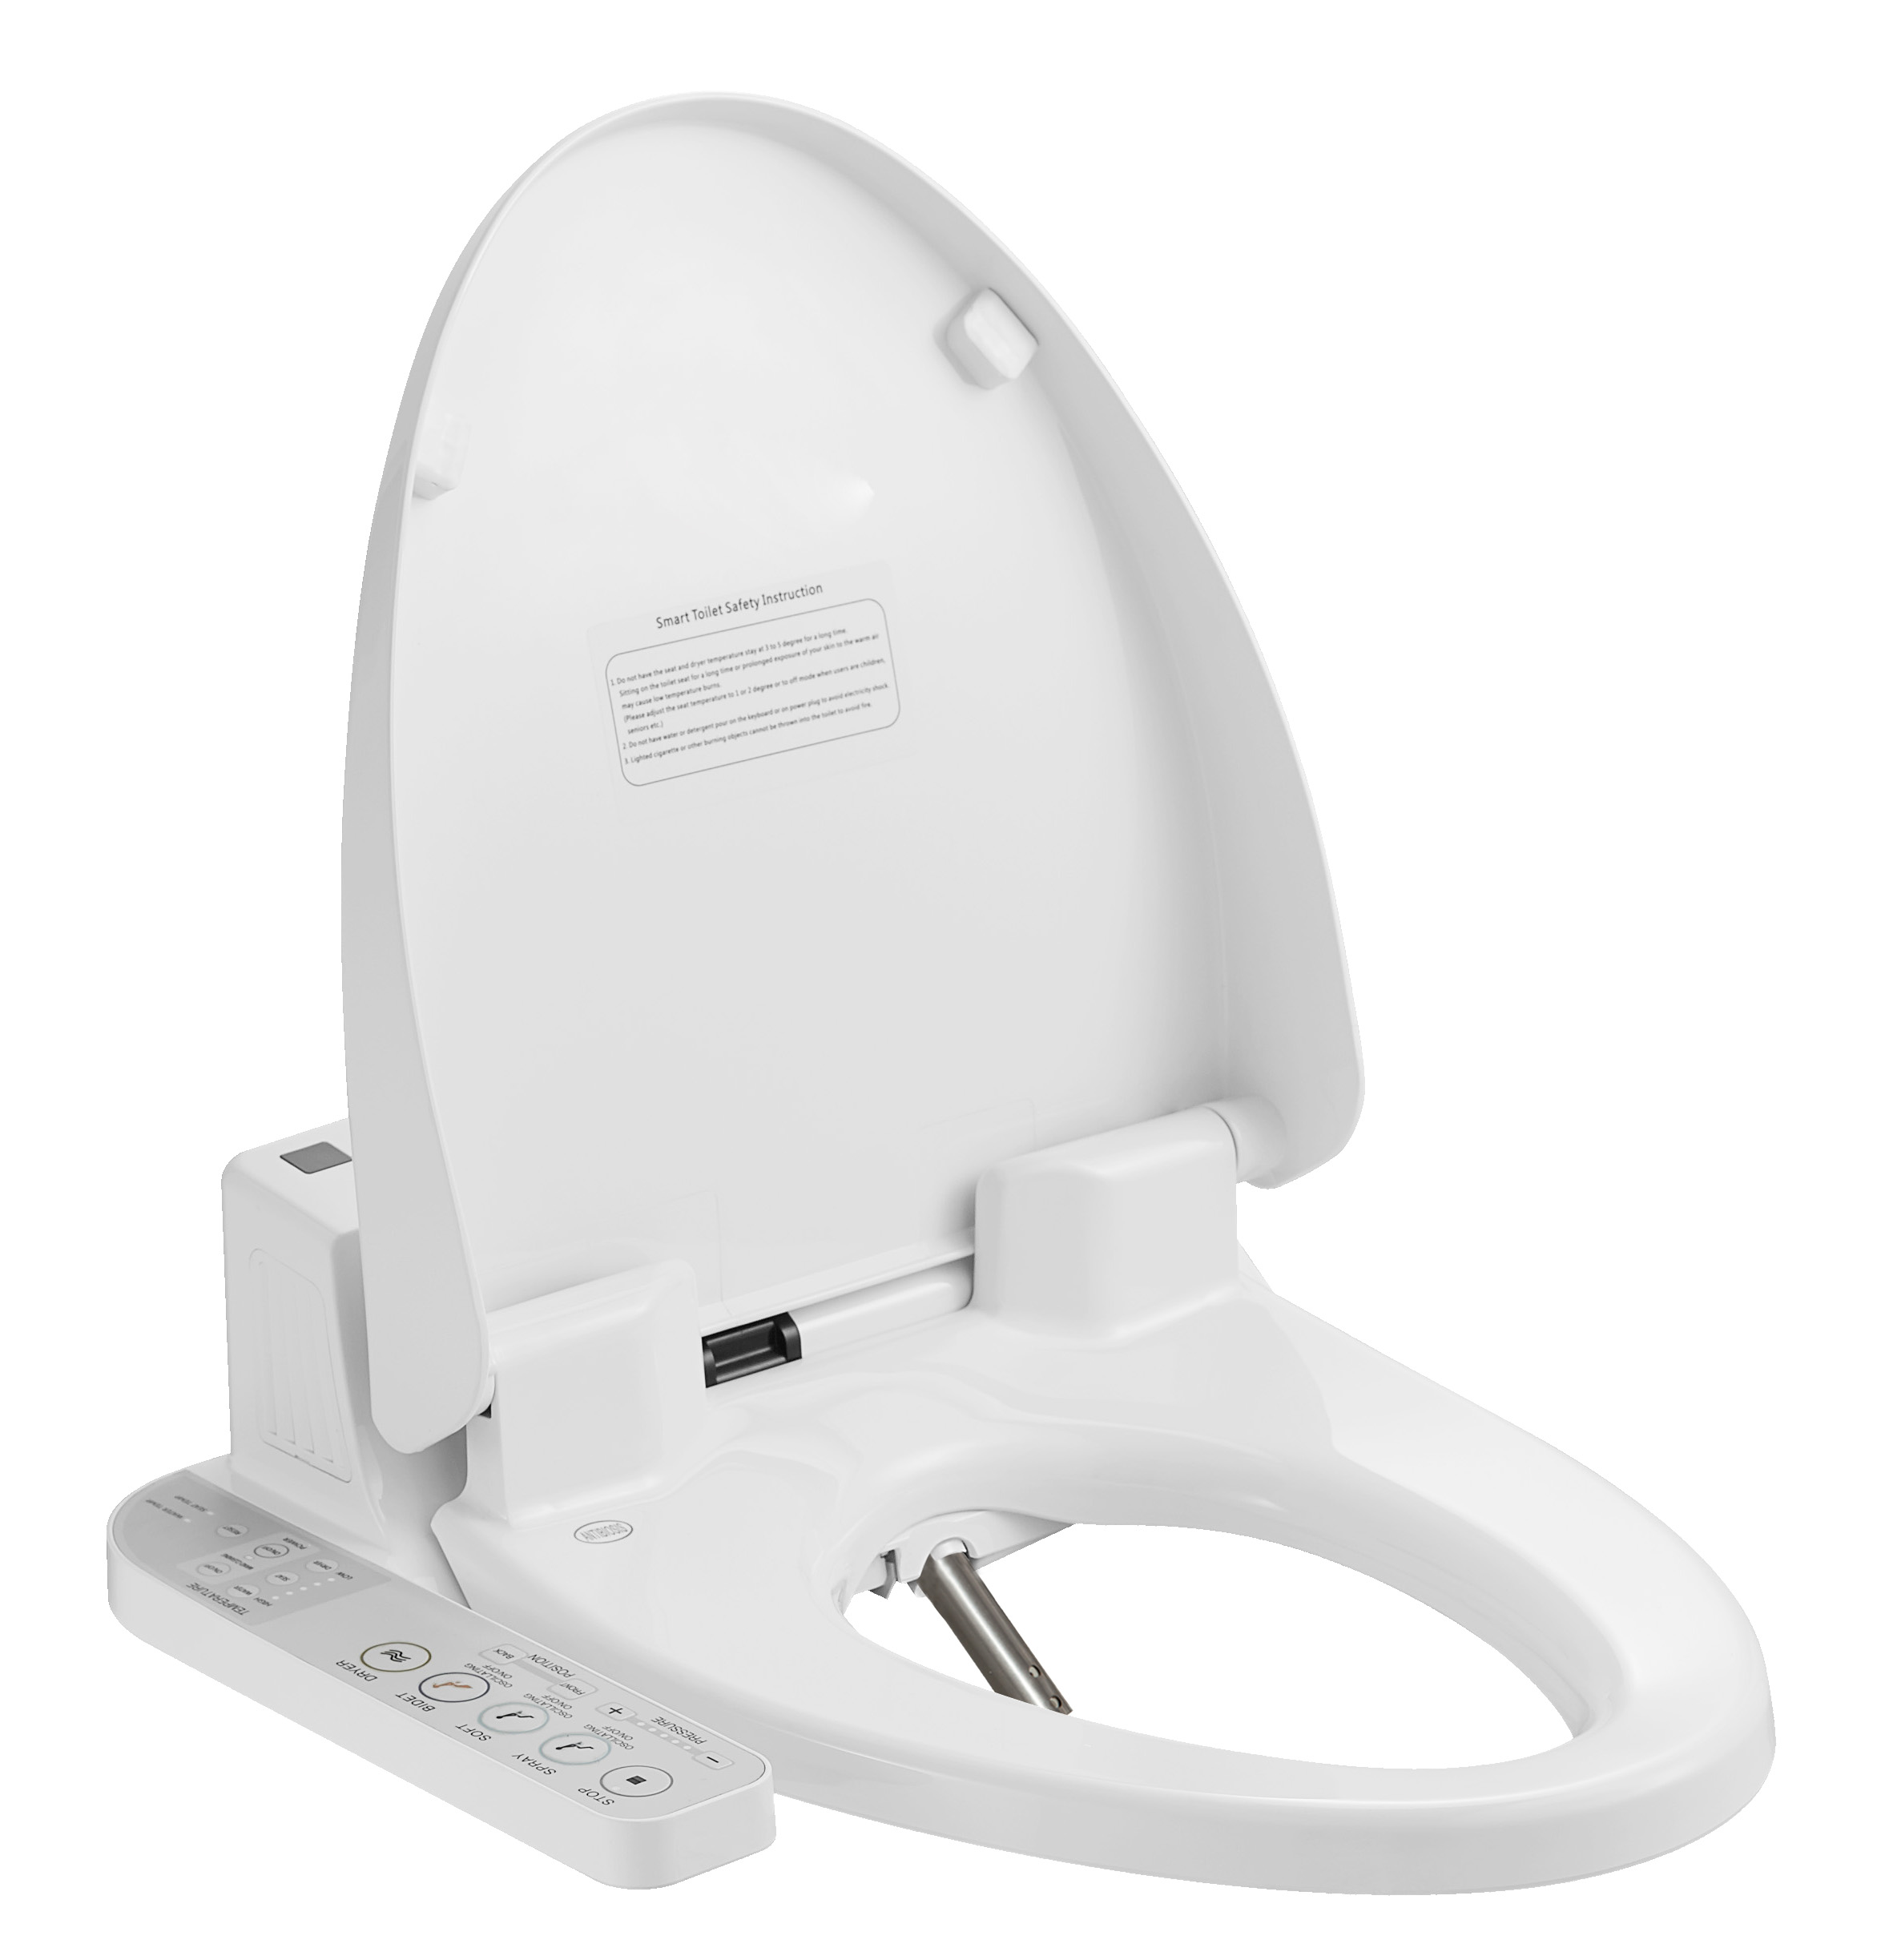 Magnificent Soft Close Heated Water Cleaning Hyundai Bidet Toilet Seat Zjf 01 Buy Heated Electric Toilet Seat Water Spray Toilet Seat Intelligent Washlet Gmtry Best Dining Table And Chair Ideas Images Gmtryco